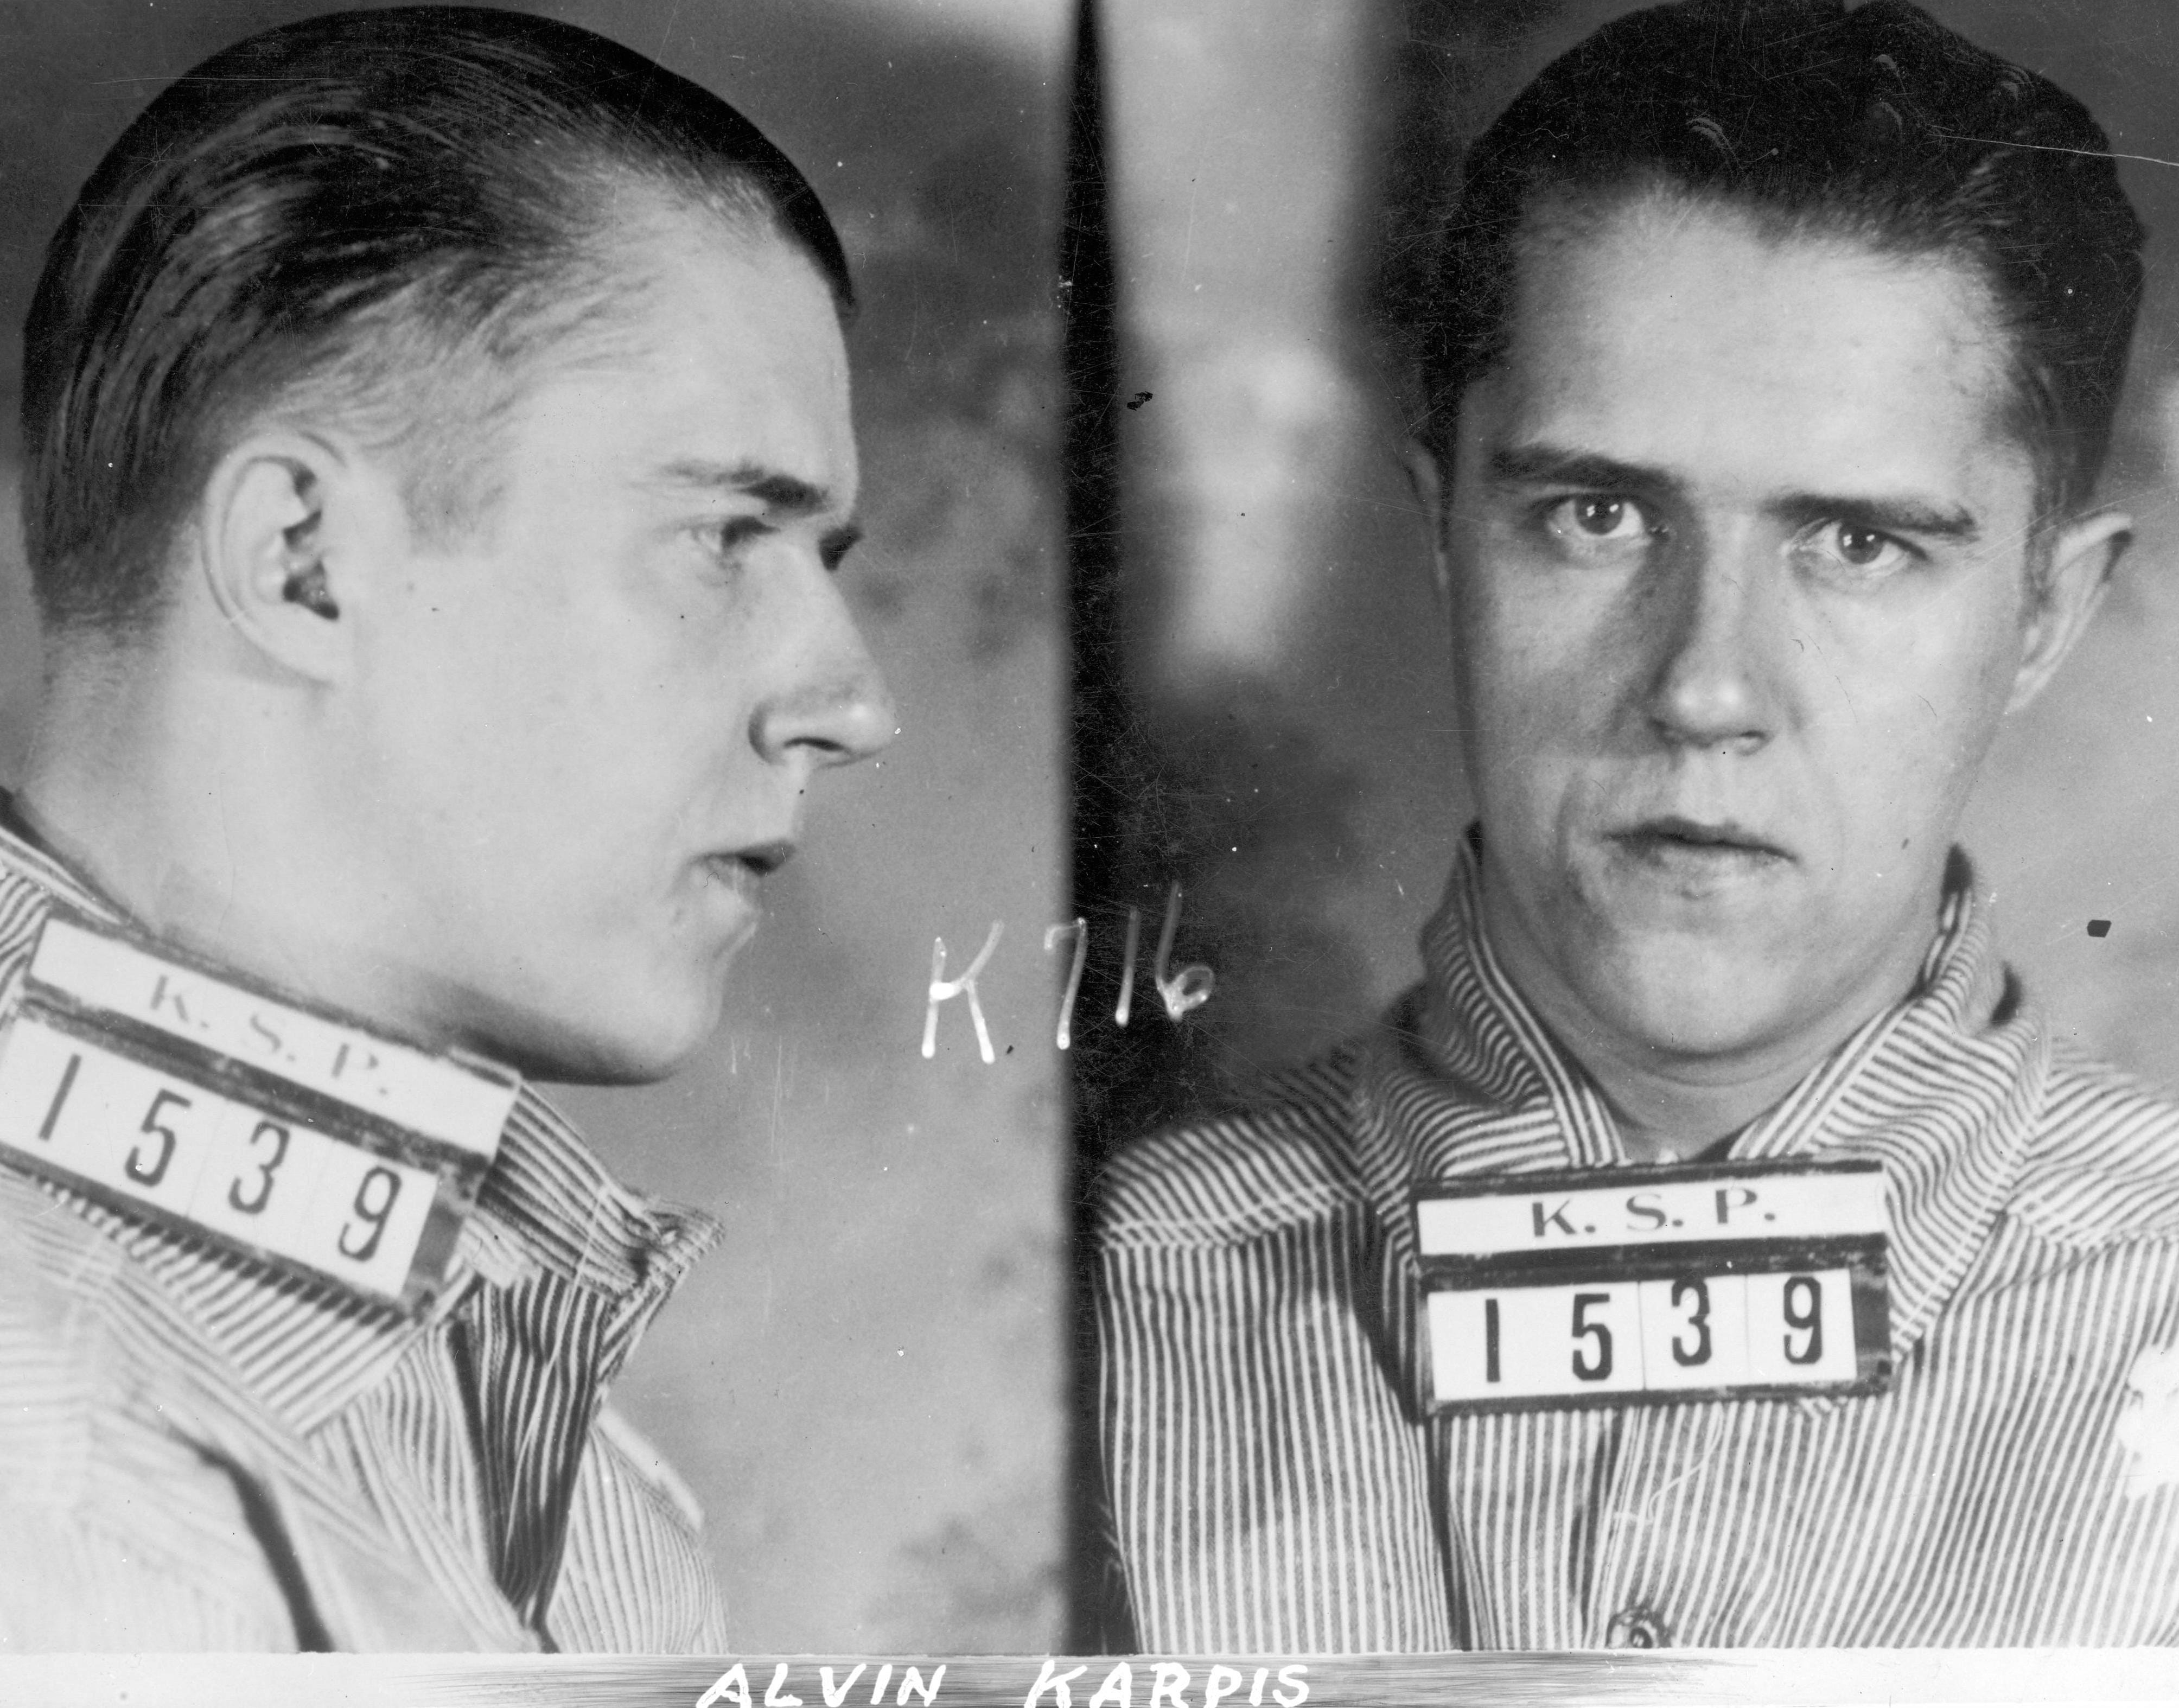 Mugshots of mobsters in the 1930s New York found in private diaries of detective now up for auction